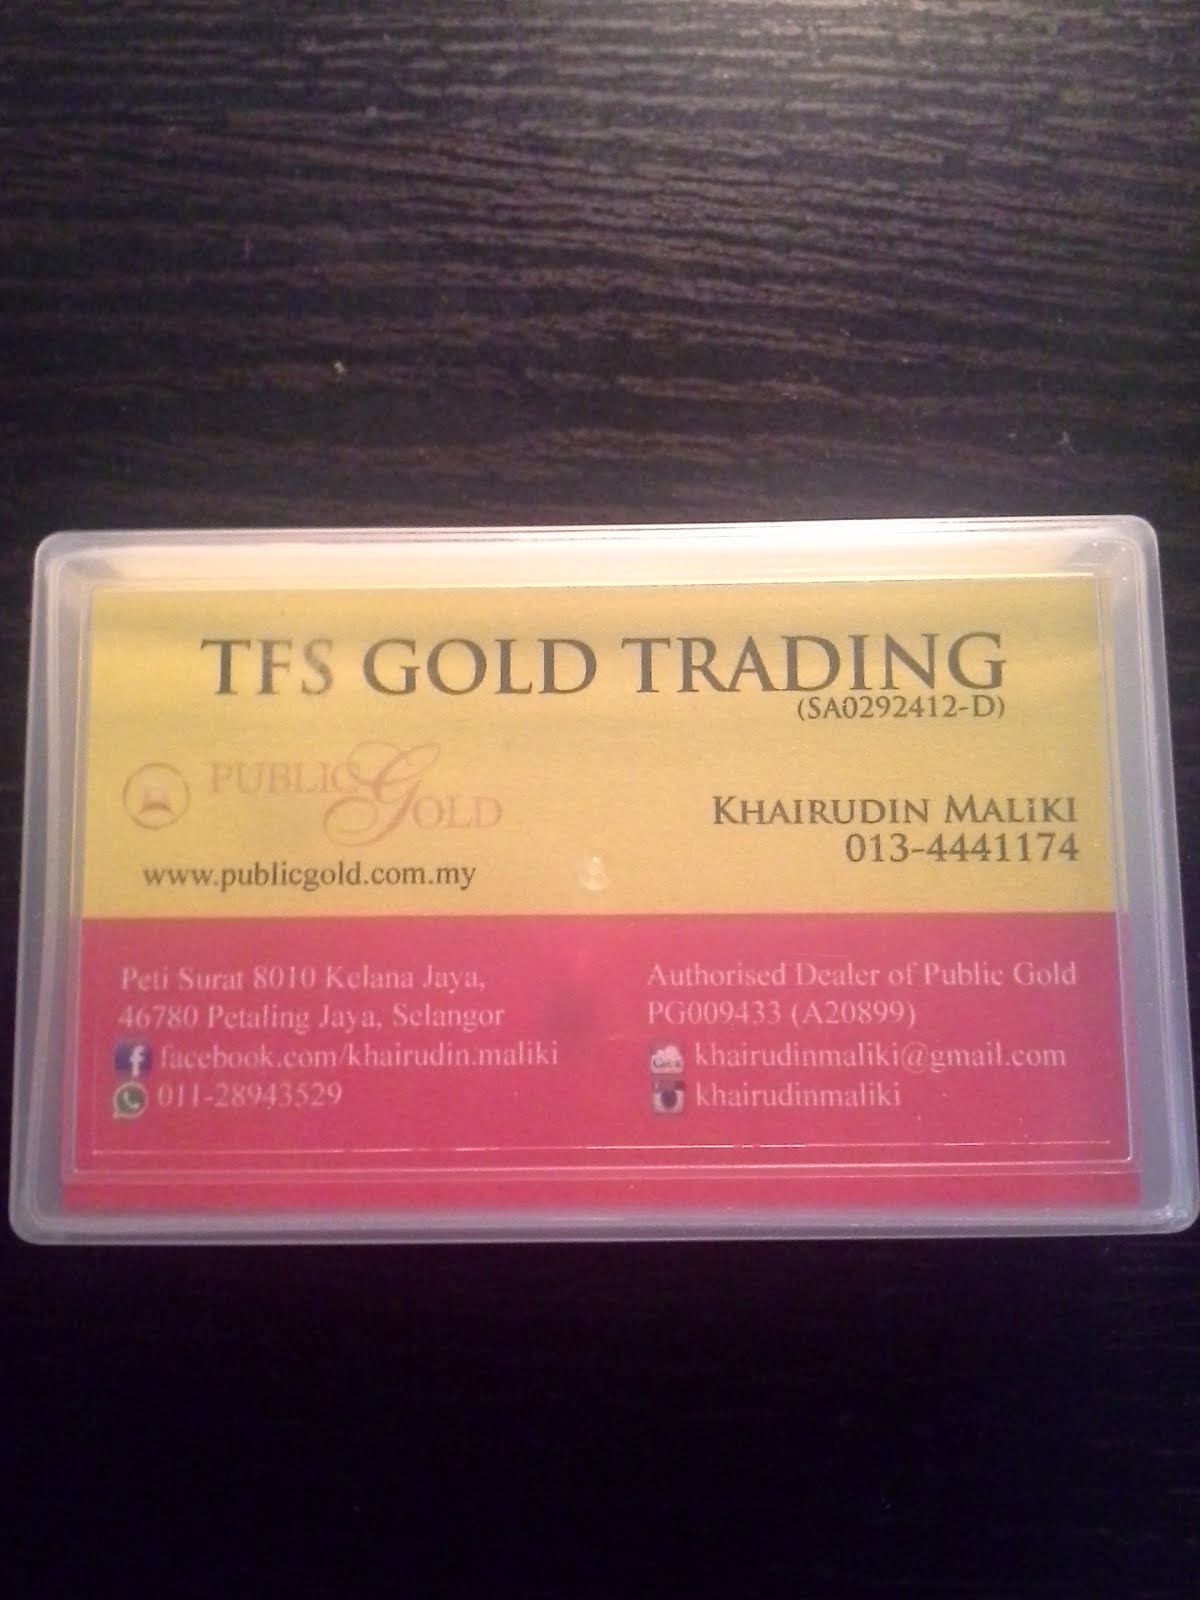 Gold Business Opportunity - Introduced by TFS Gold Trading @ PG009433